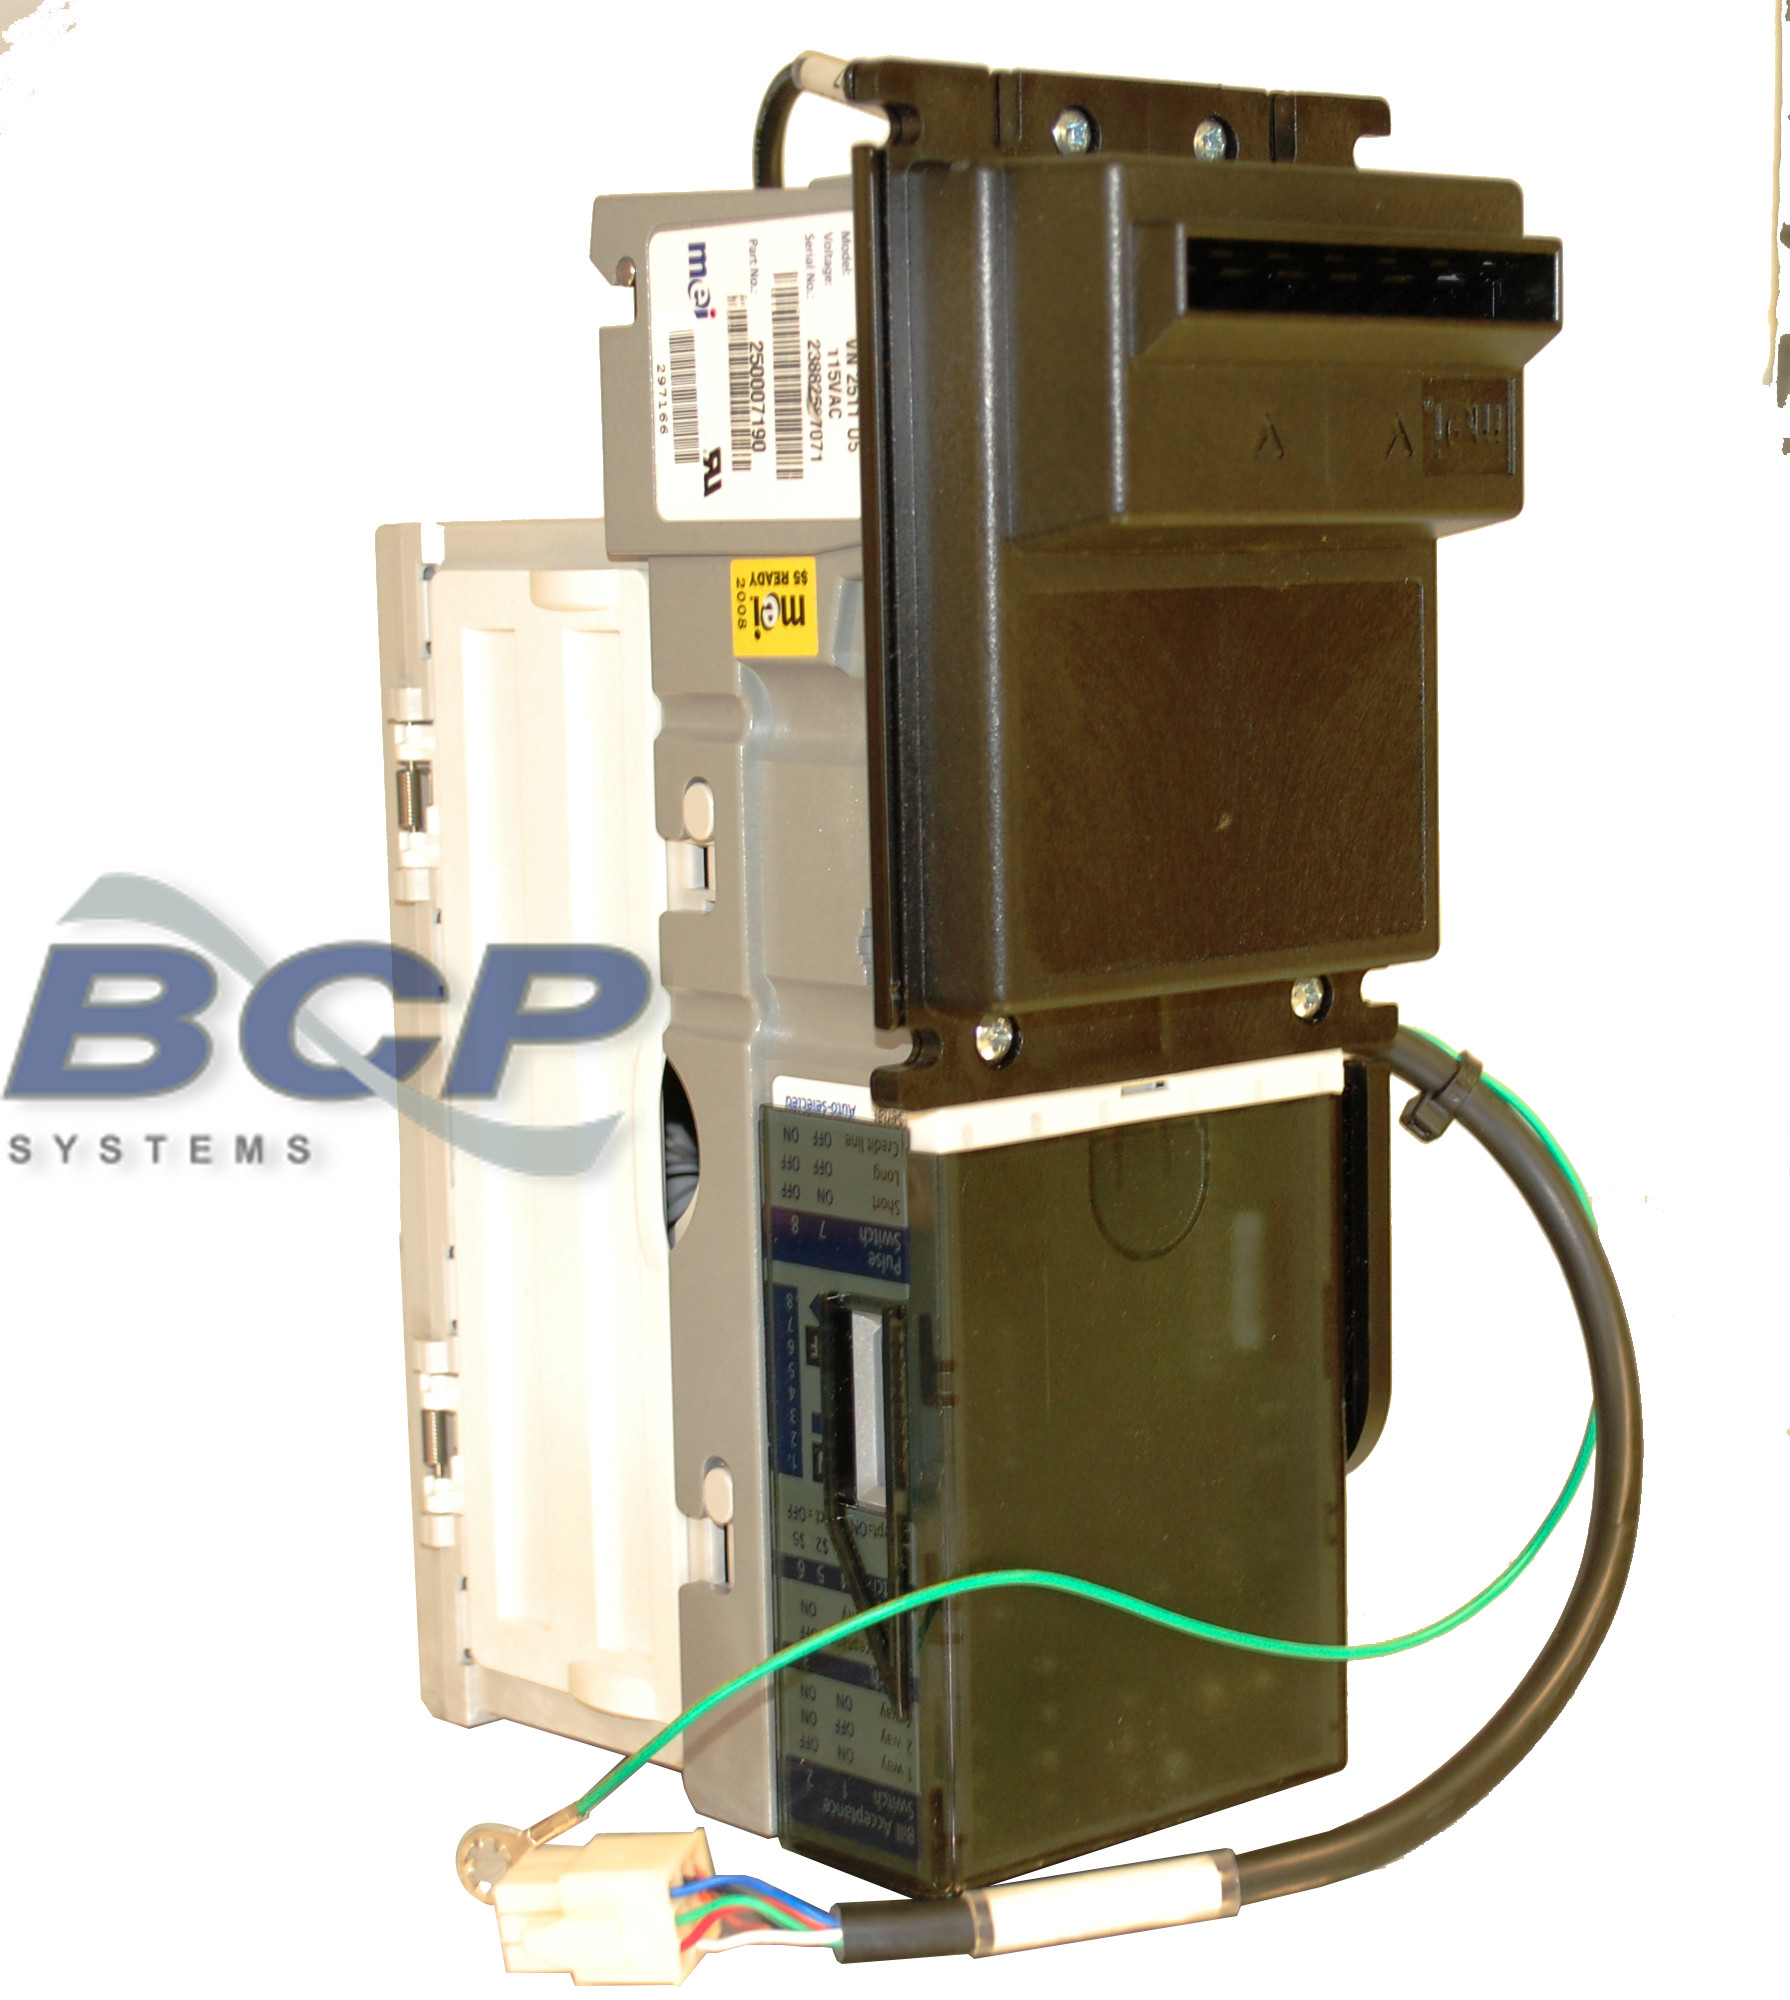 hight resolution of bcp systems specialized wire harness assembly and repair services for the aerospace medical and oil industries